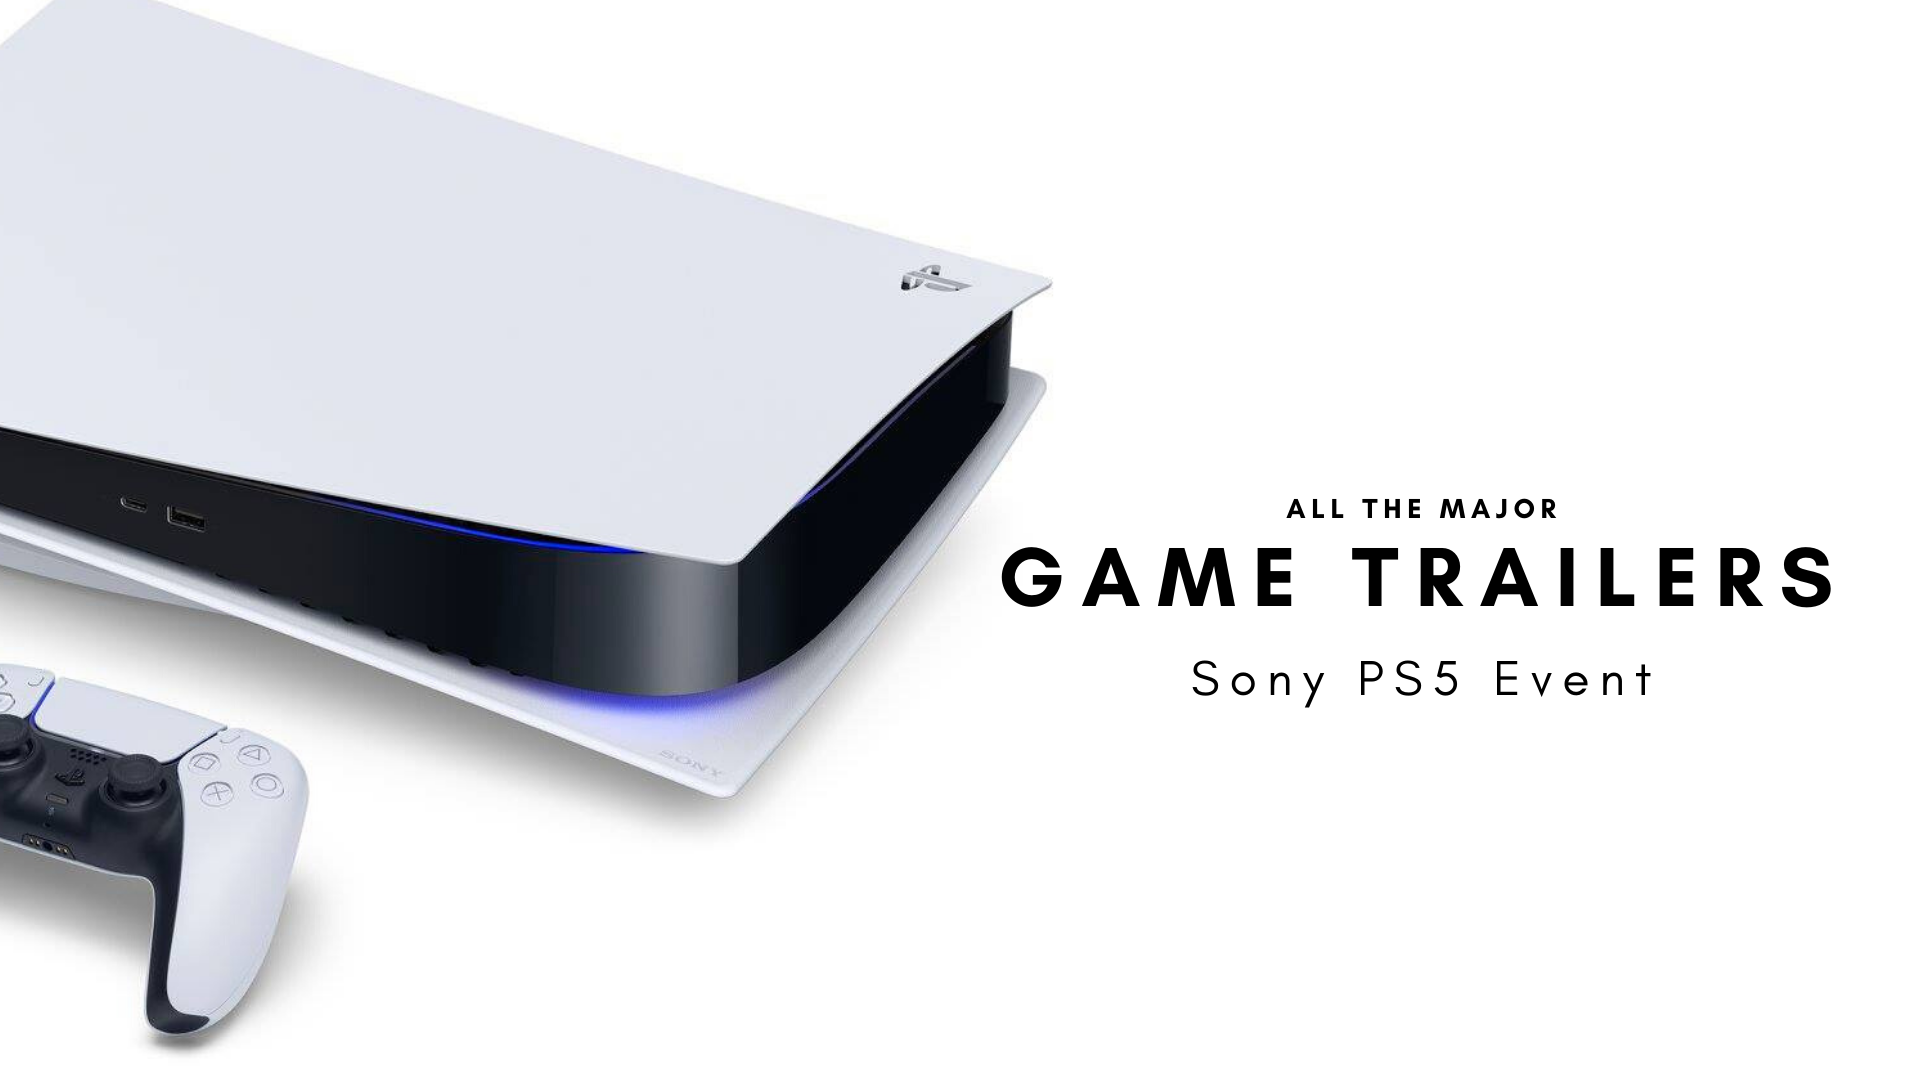 Sony Ps5 Event All The Major Ps5 Game Trailers In One Place The Axo